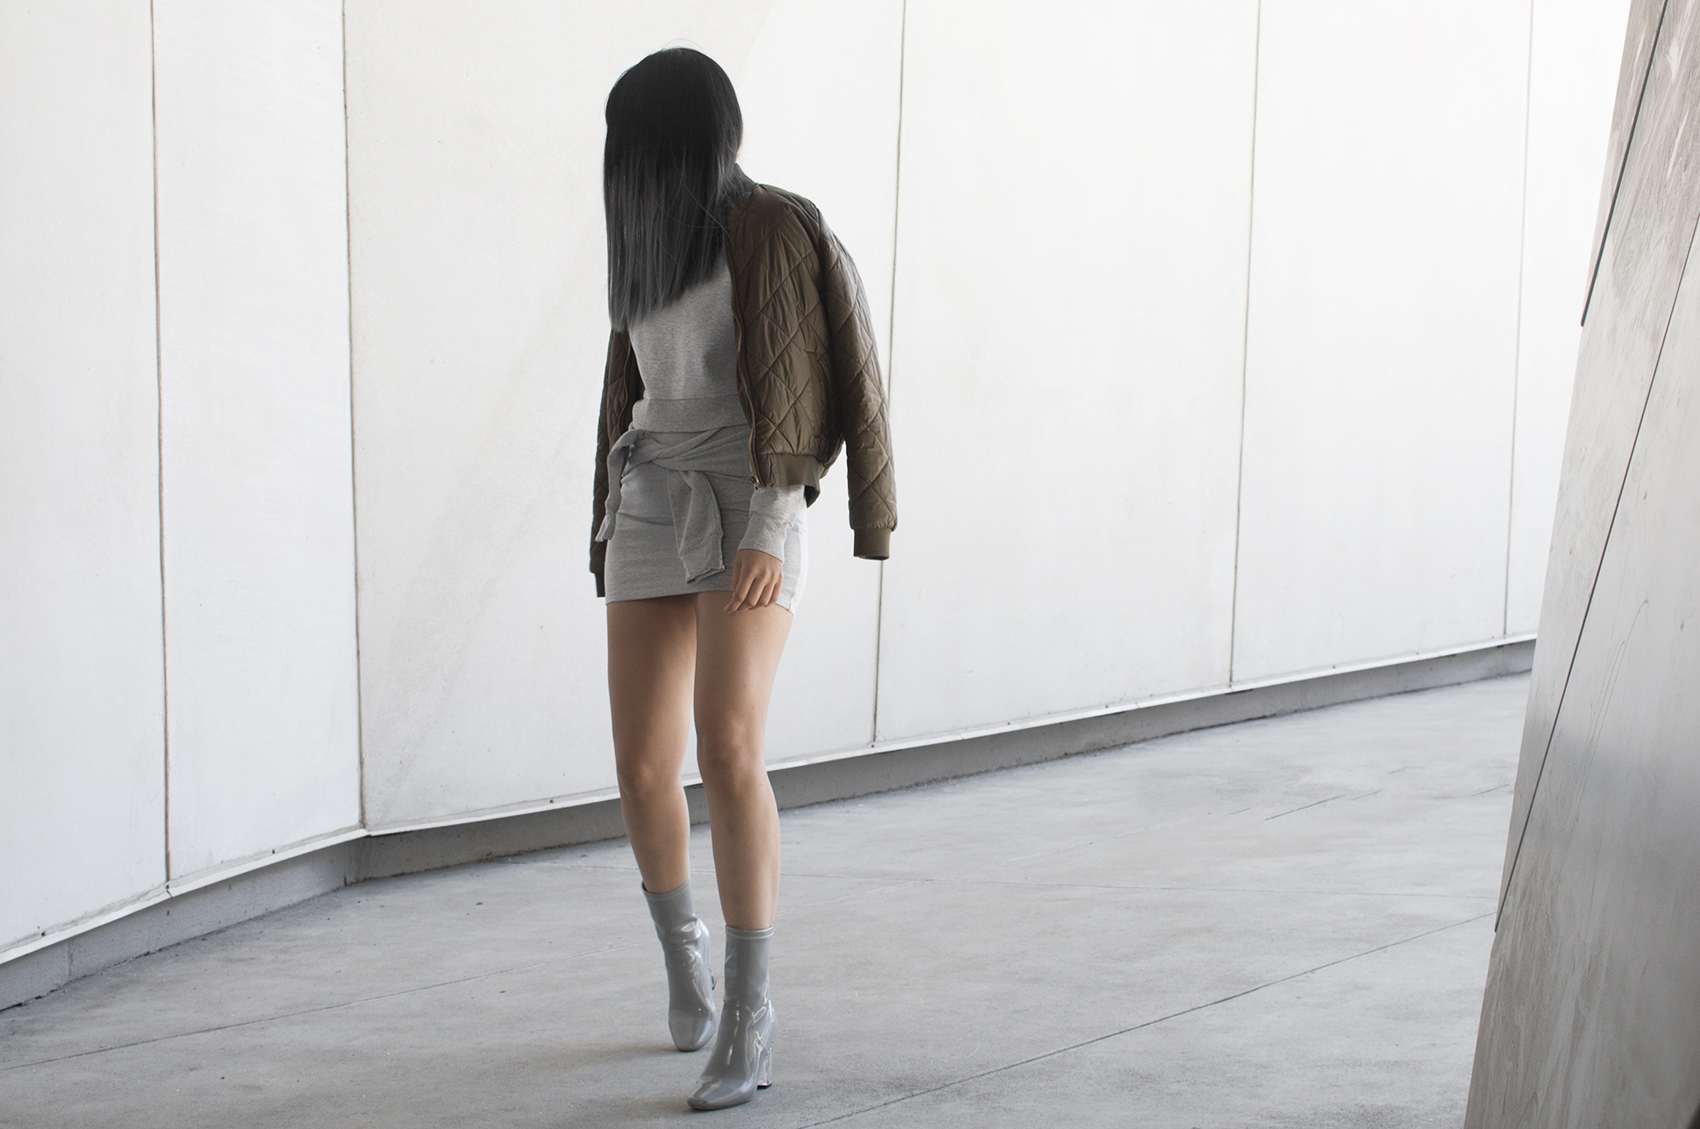 grey-sweaterskirt-1-crop-resize